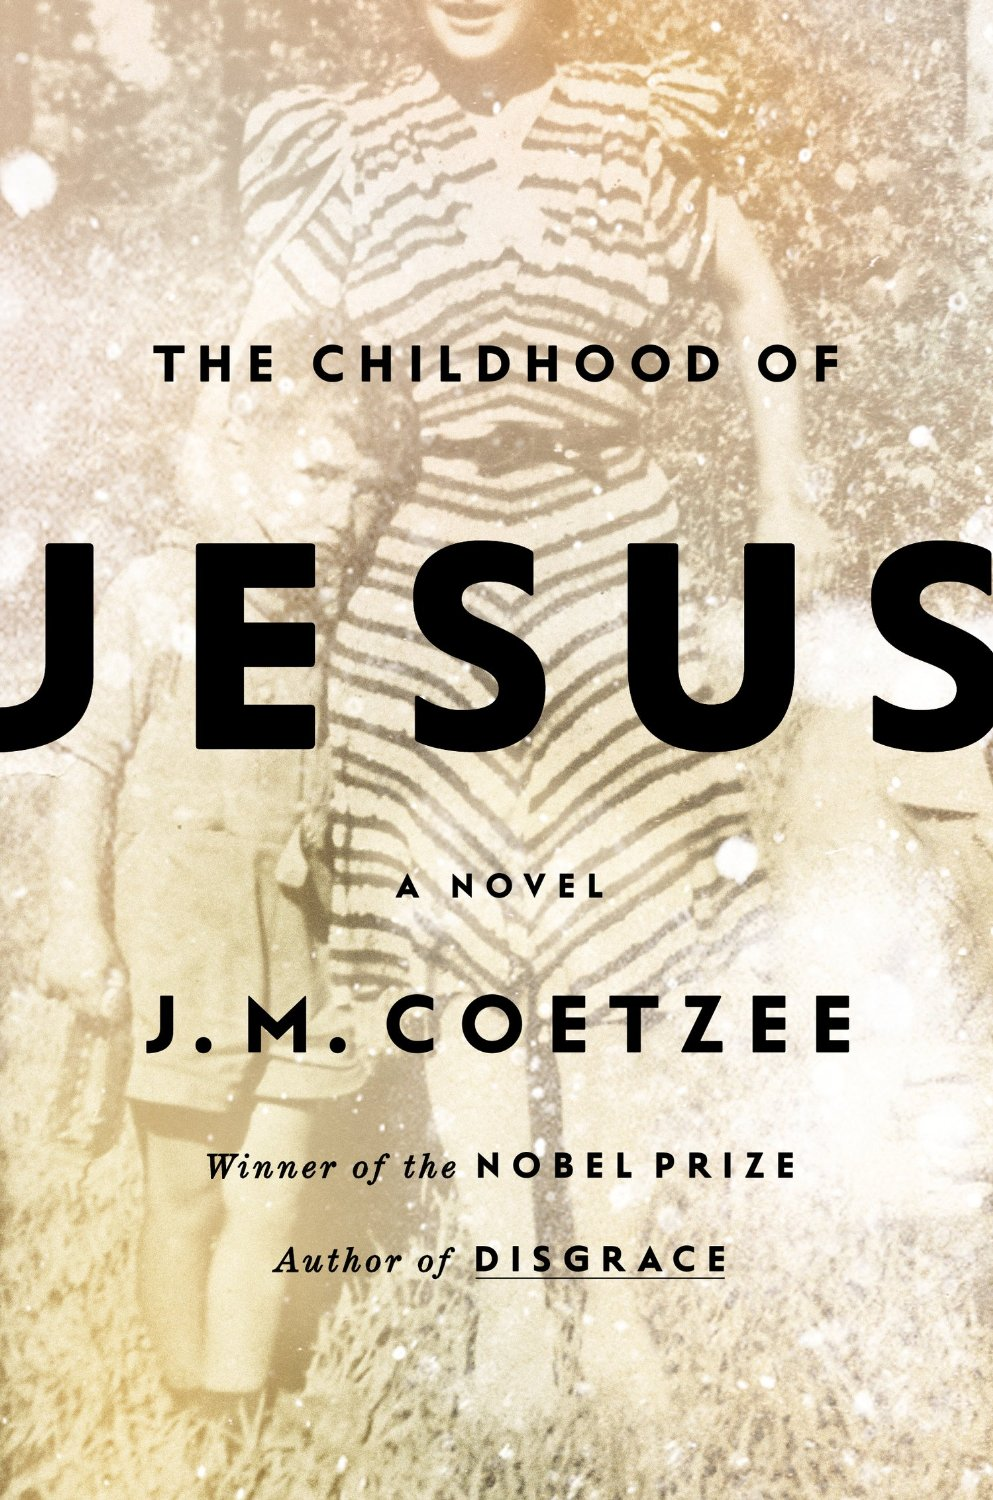 essay on boyhood by j.m. coetzee Jm coetzee was born in cape town, south africa his novels include the master of petersburg, age of iron, the life and times of michael k, waiting for the.